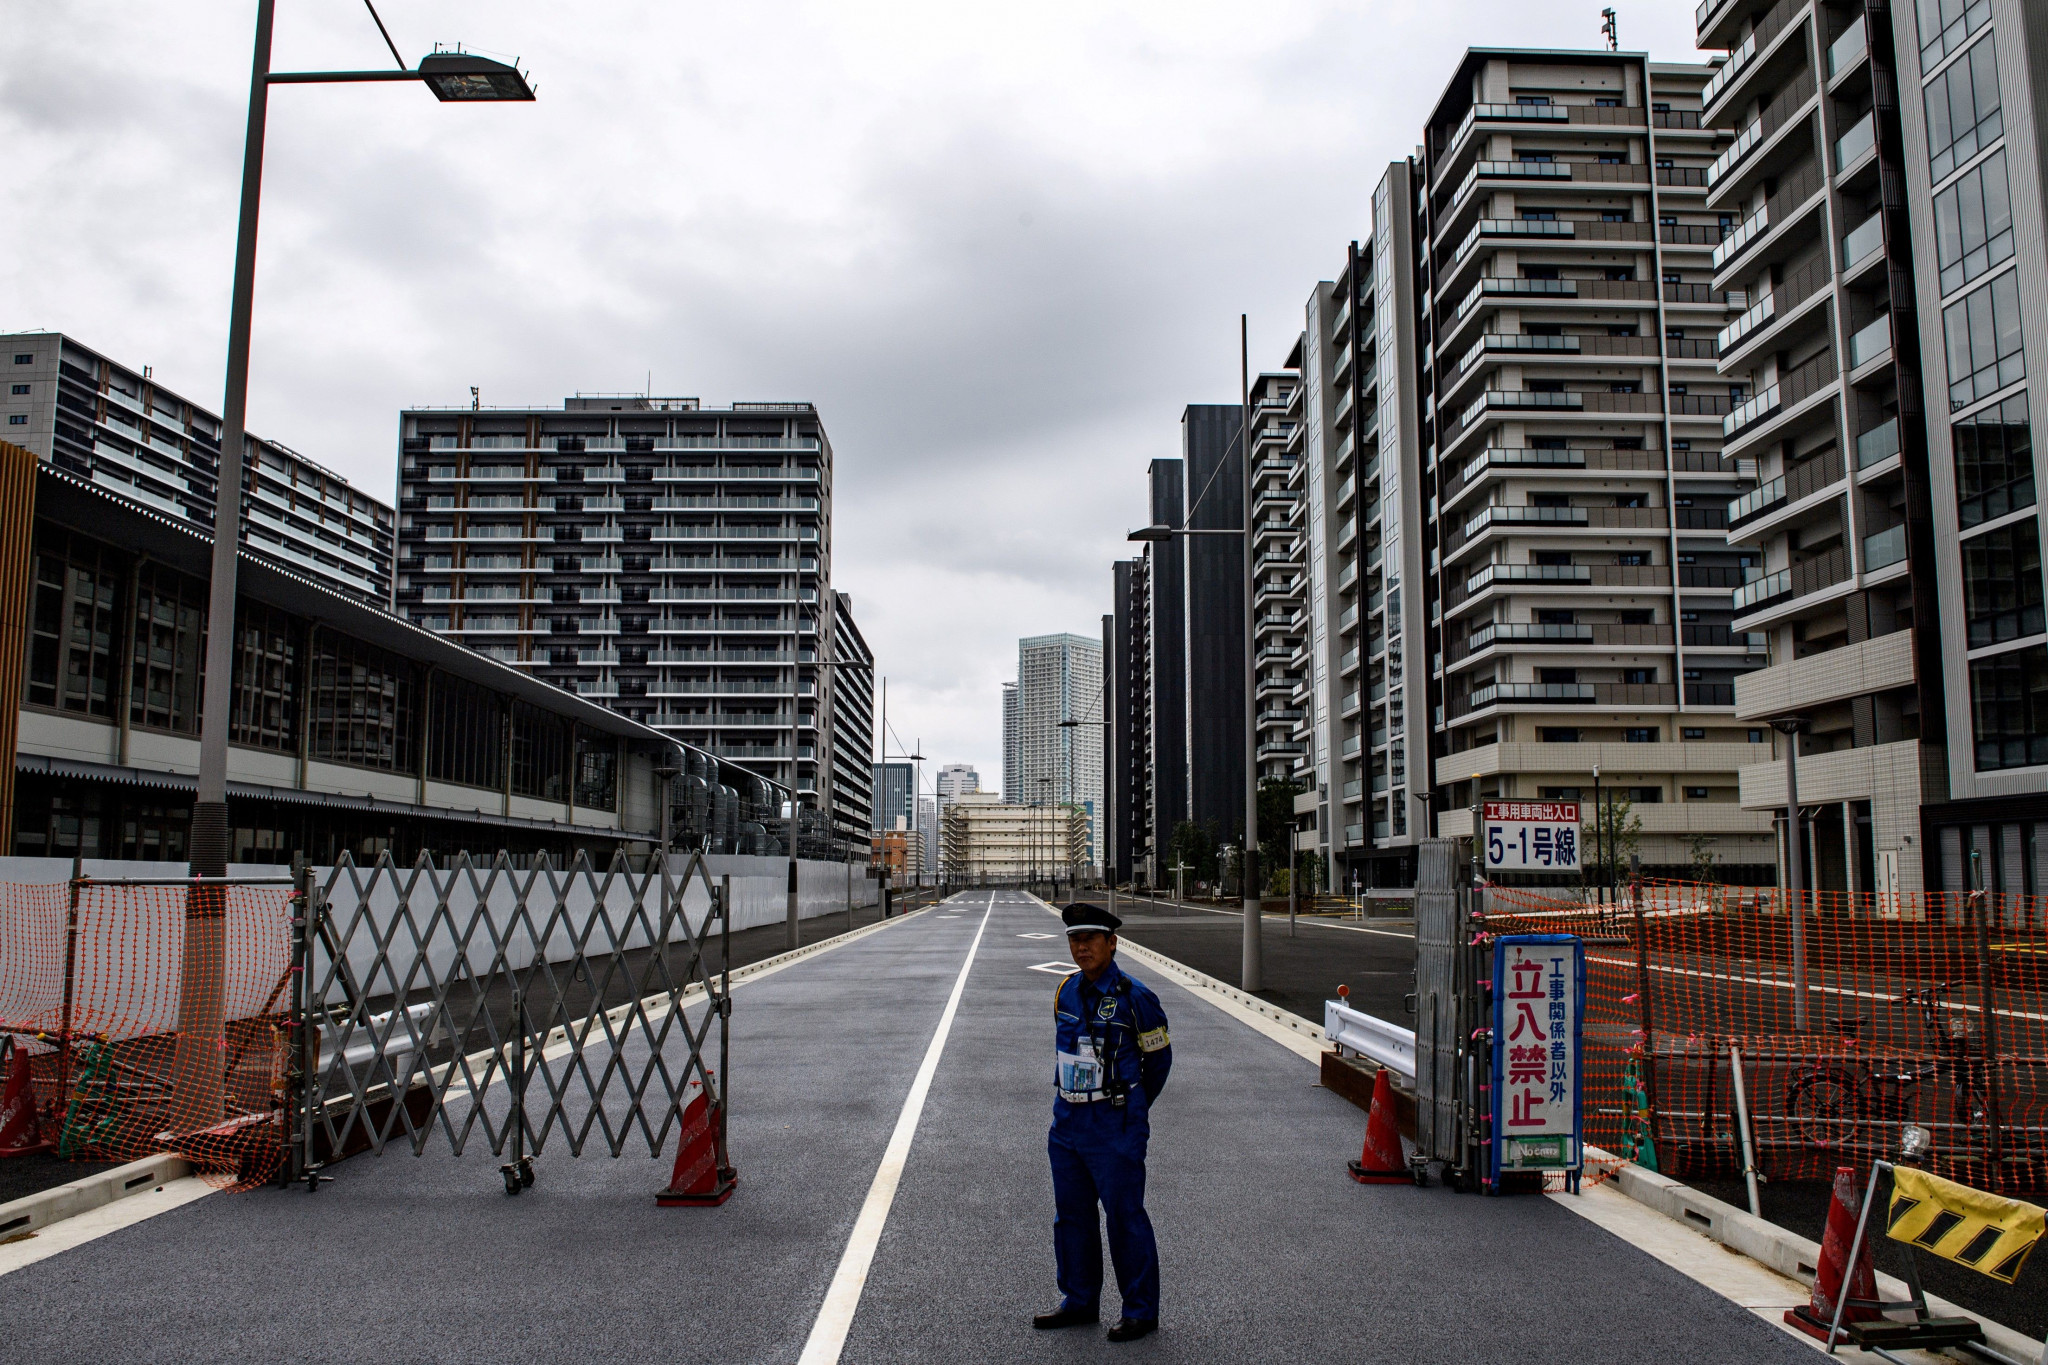 Athletes will be limited to the Athletes' Village and venues at Tokyo 2020 ©Getty Images